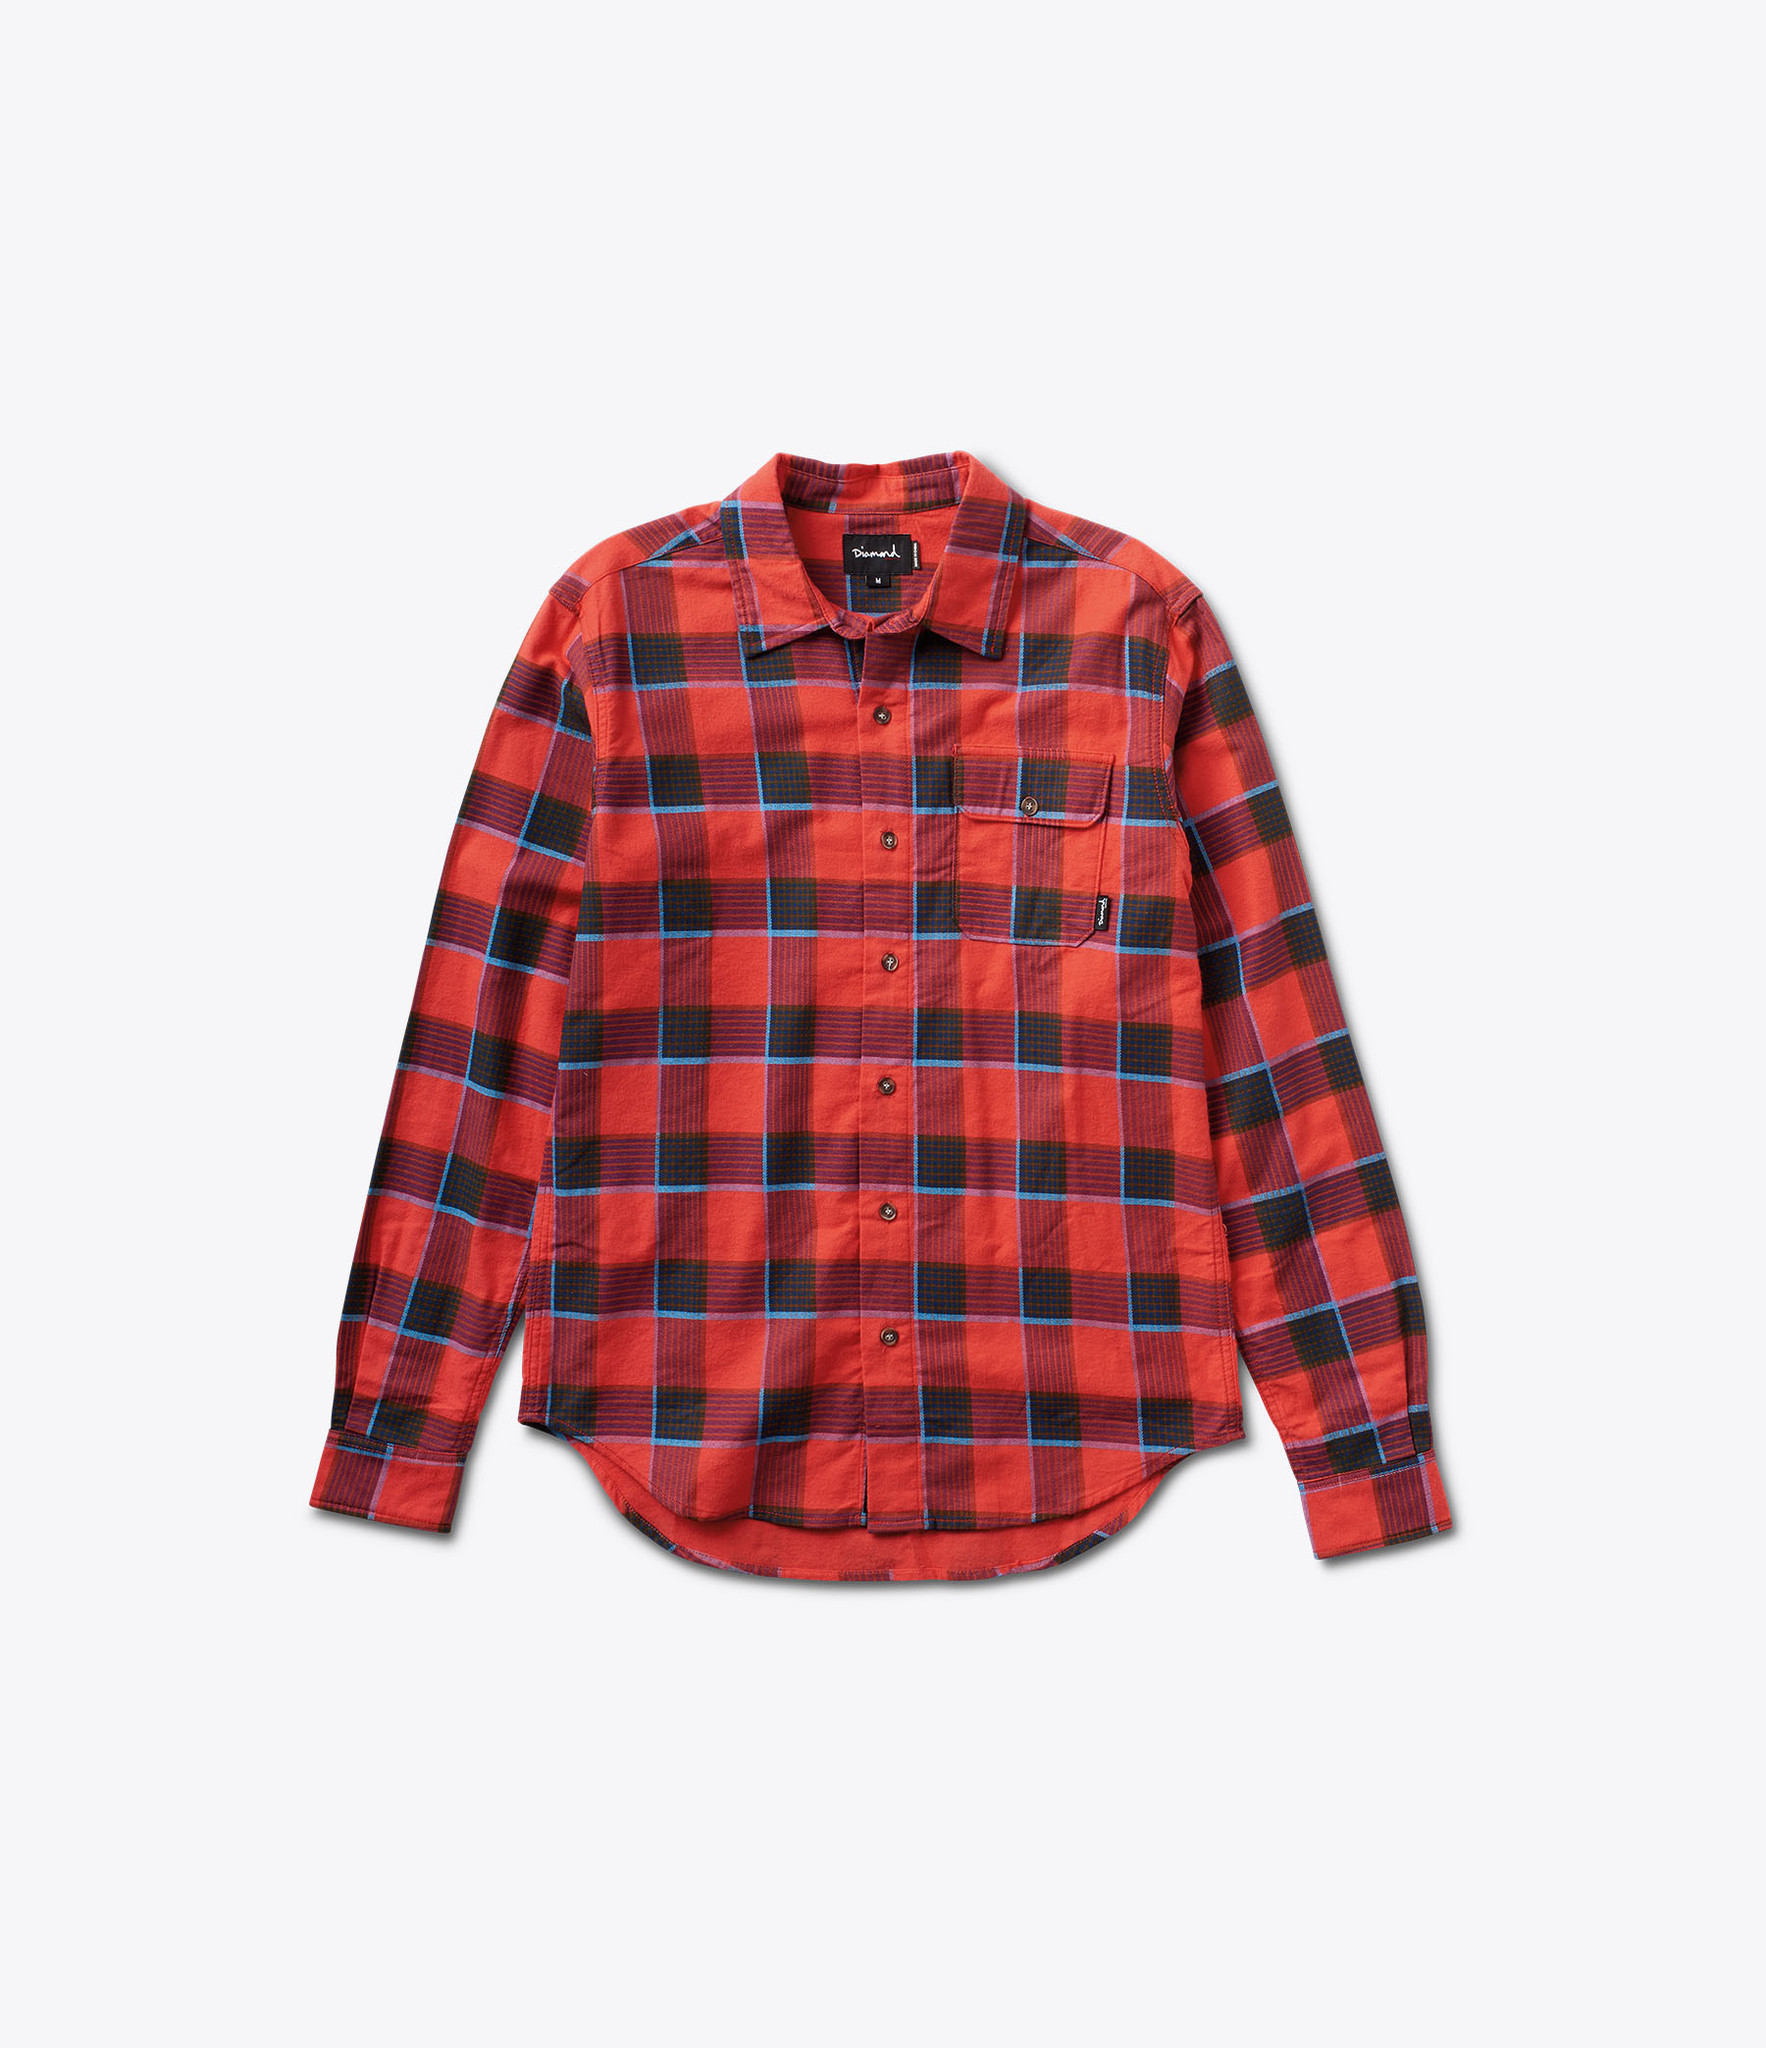 ダイヤモンドサプライ C16DMTA02 HOLIDAY FLANNEL SHIRT BURGUND